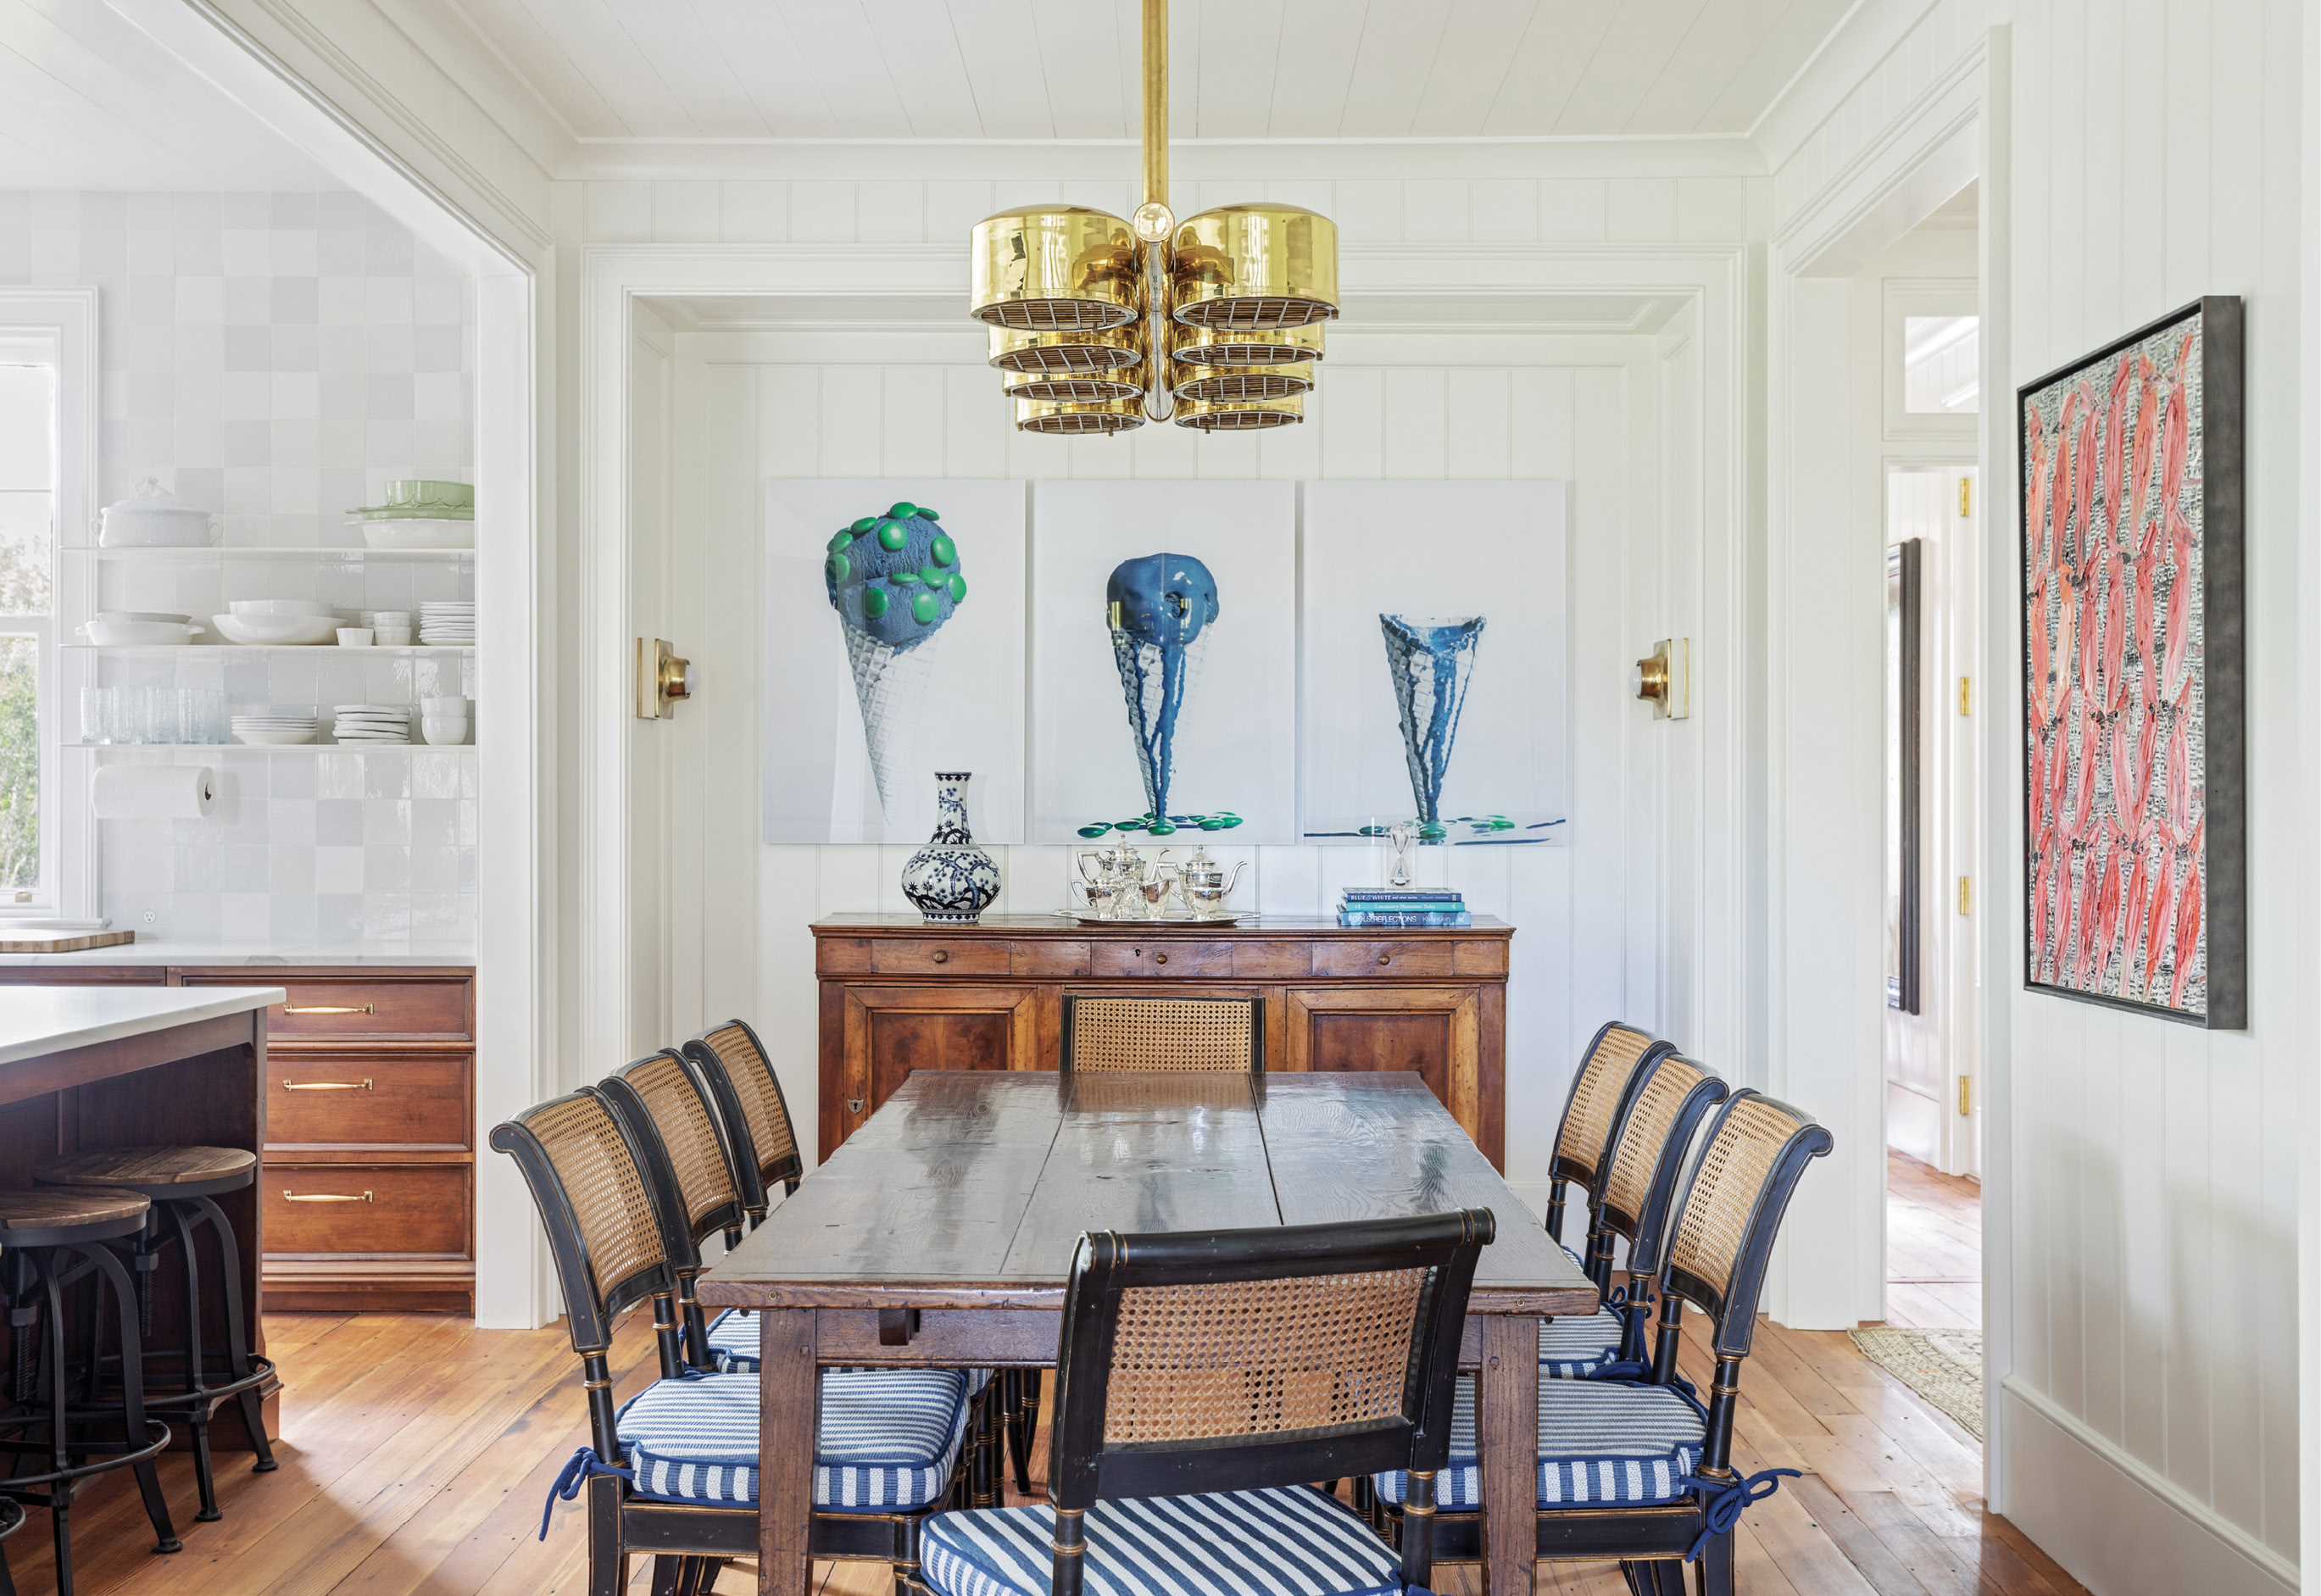 Thanks to the wife's expert eye and quick fingers on 1stDibs.com, a treasure trove of vintage and antique light fixtures complements the interiors. In the dining room, both the nautically inspired chandelier and brass wall sconces were sourced from the site, the latter to illuminate the melting ice cream triptych, Picture Global Warming, by Swedish photographer Clara Hallencreutz.